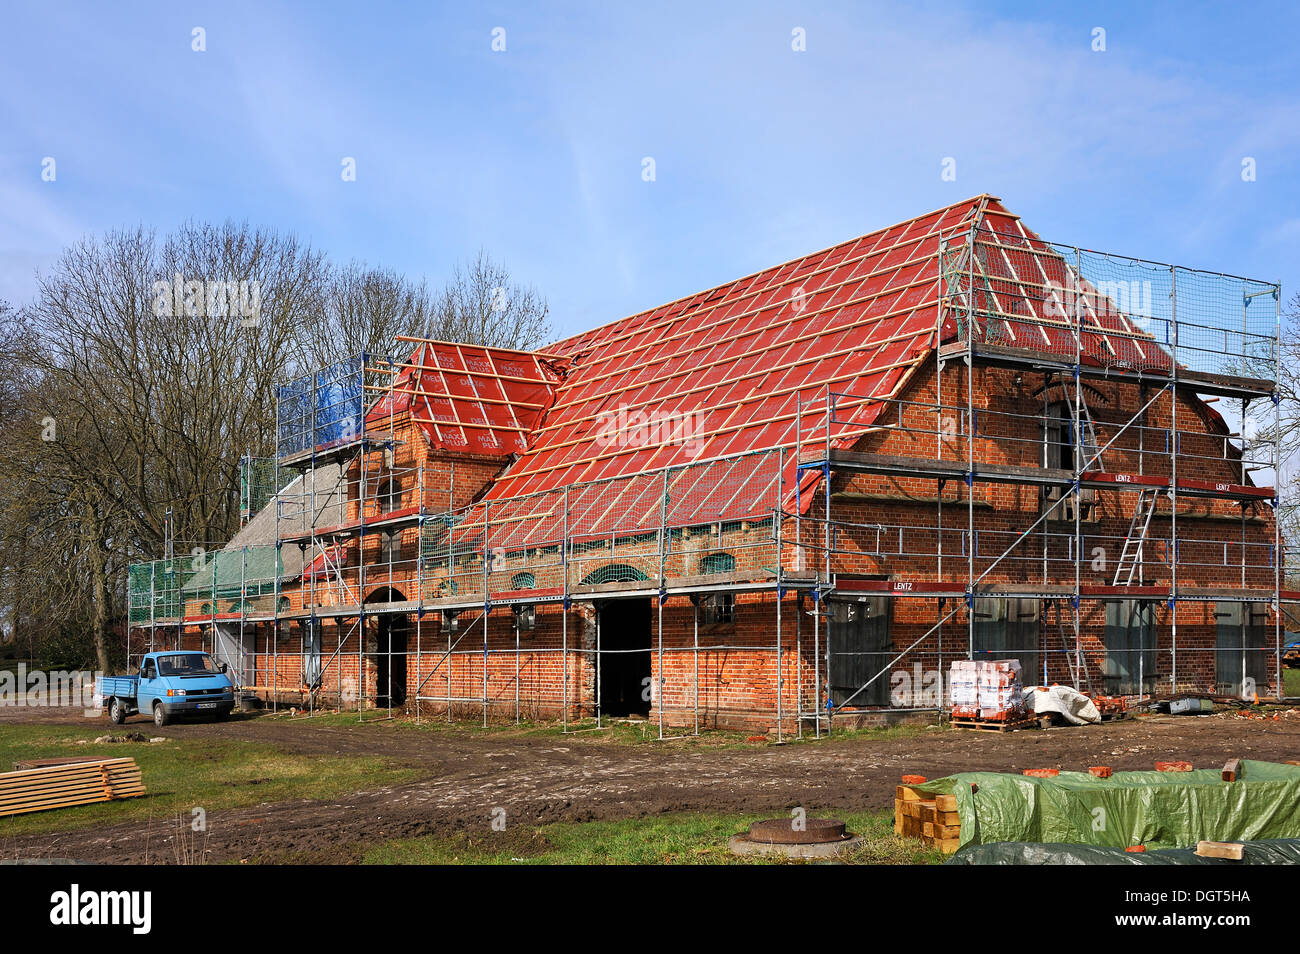 Complete roof renewal of a horse stable from 1918, Othenstorf, Mecklenburg-Western Pomerania, Germany - Stock Image